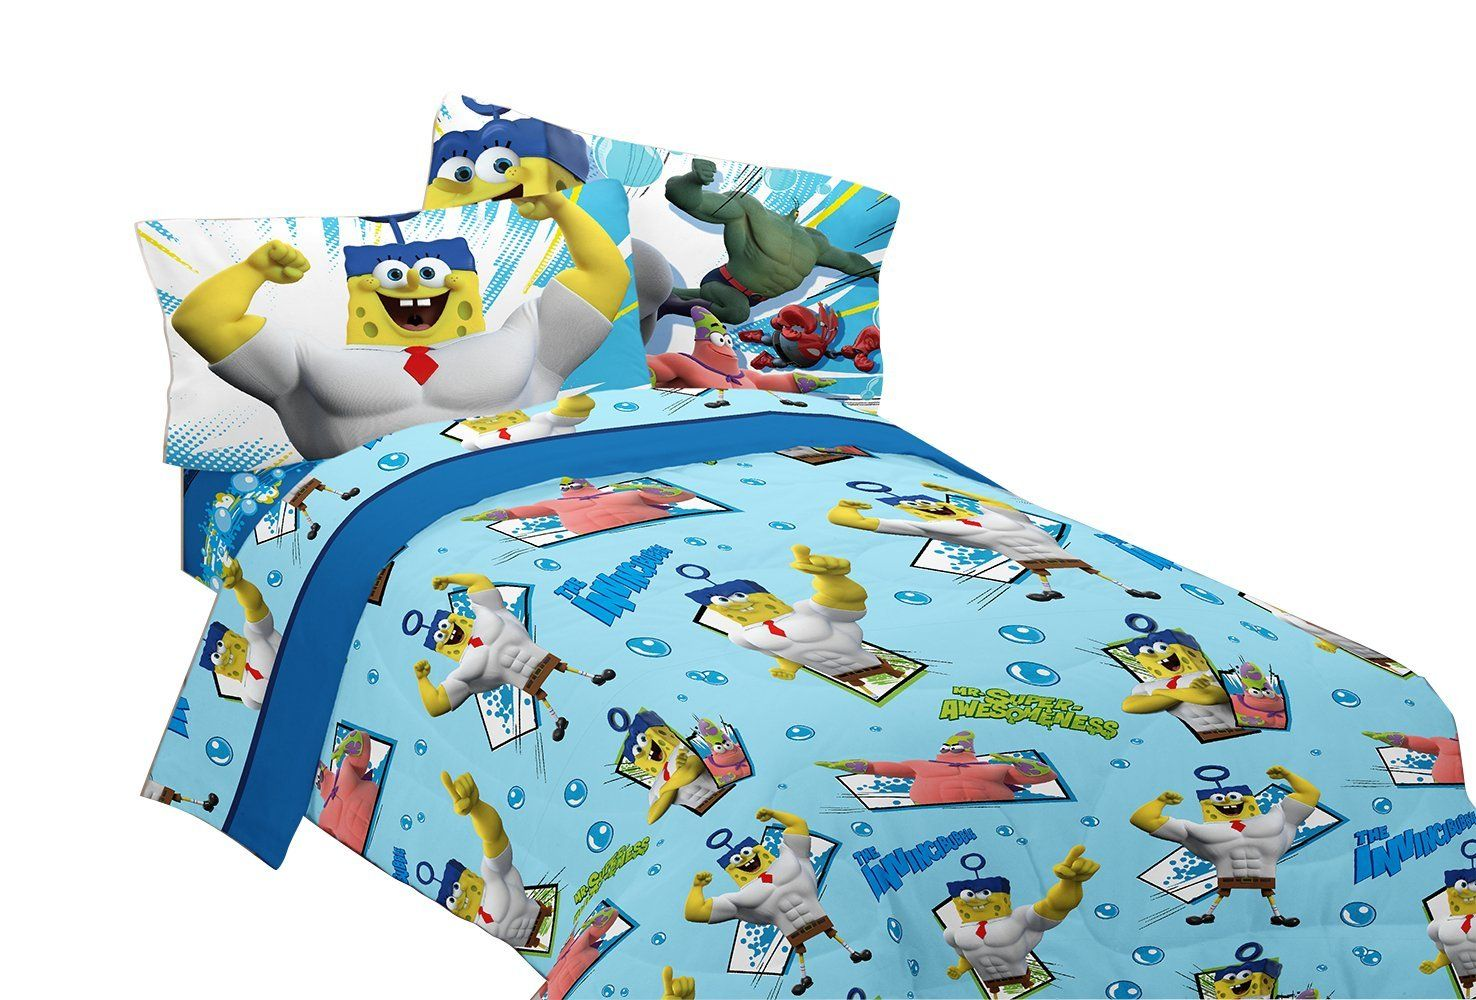 Nickelodeon Sponge Bob Mr. Awesome Twin Sheet